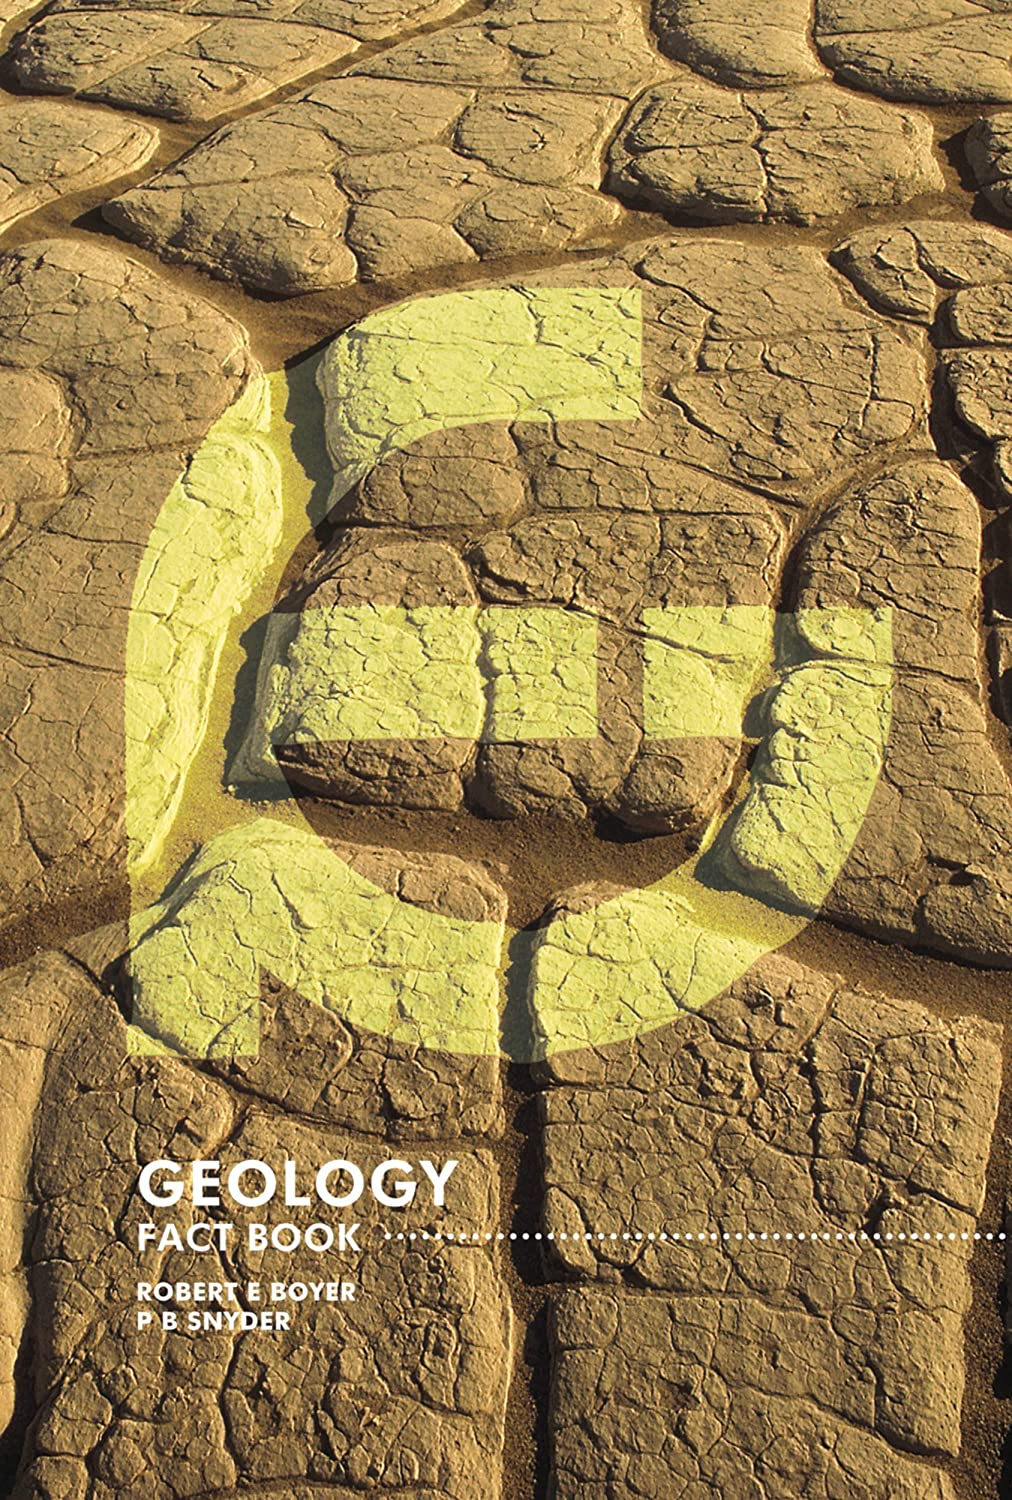 American Educational Geology Fact Book